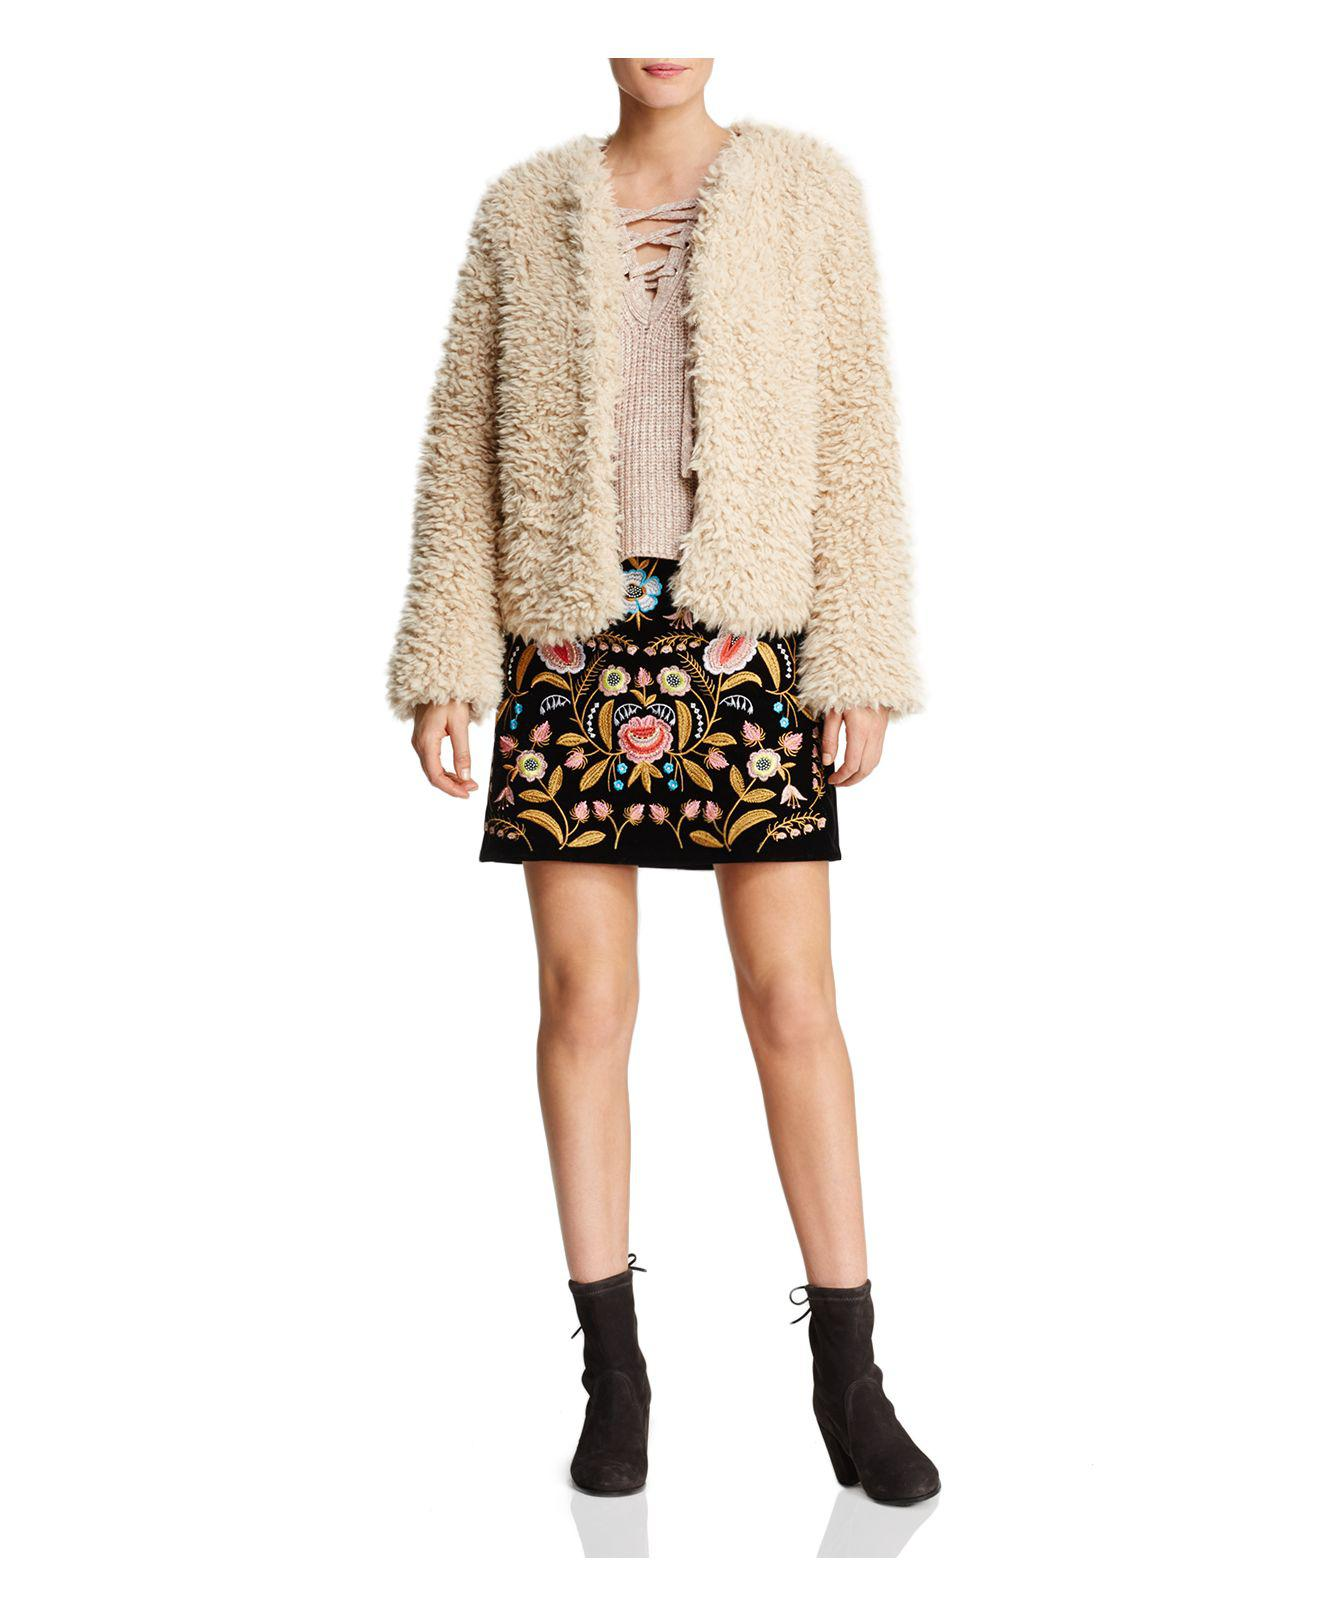 Lucy Paris Embroidered Mini Skirt in Black